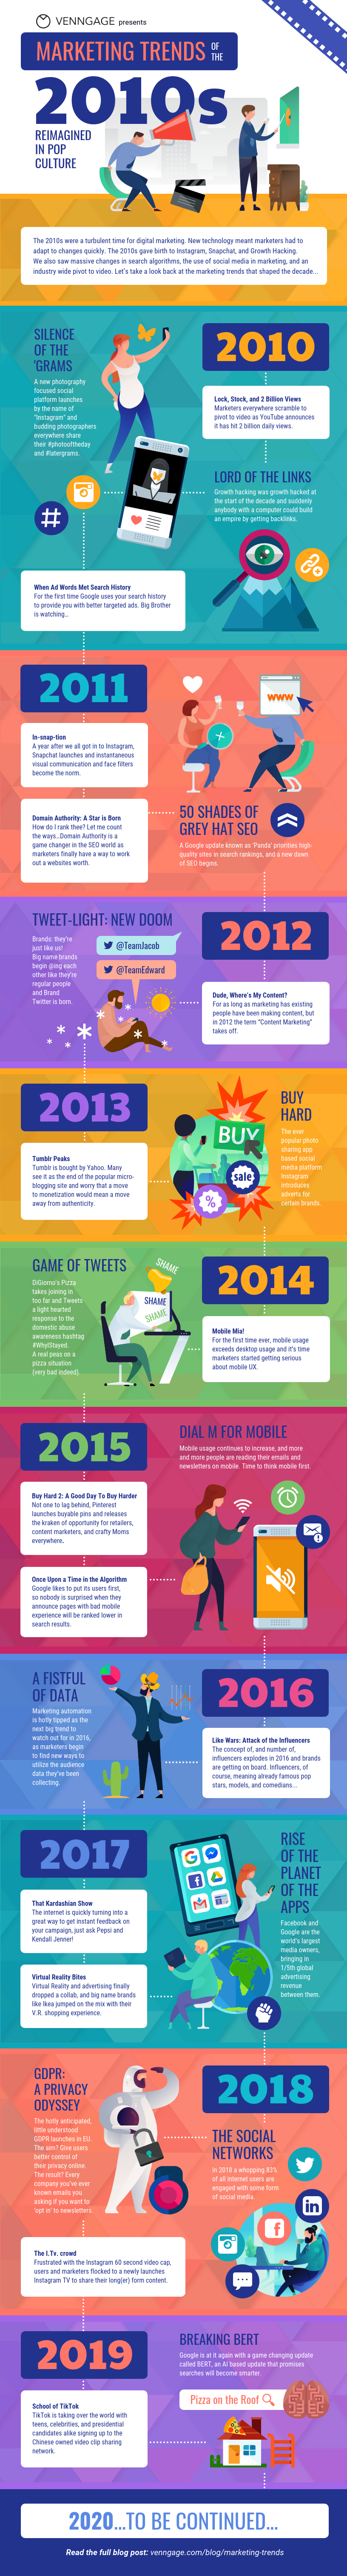 Evolution of Marketing Infographic